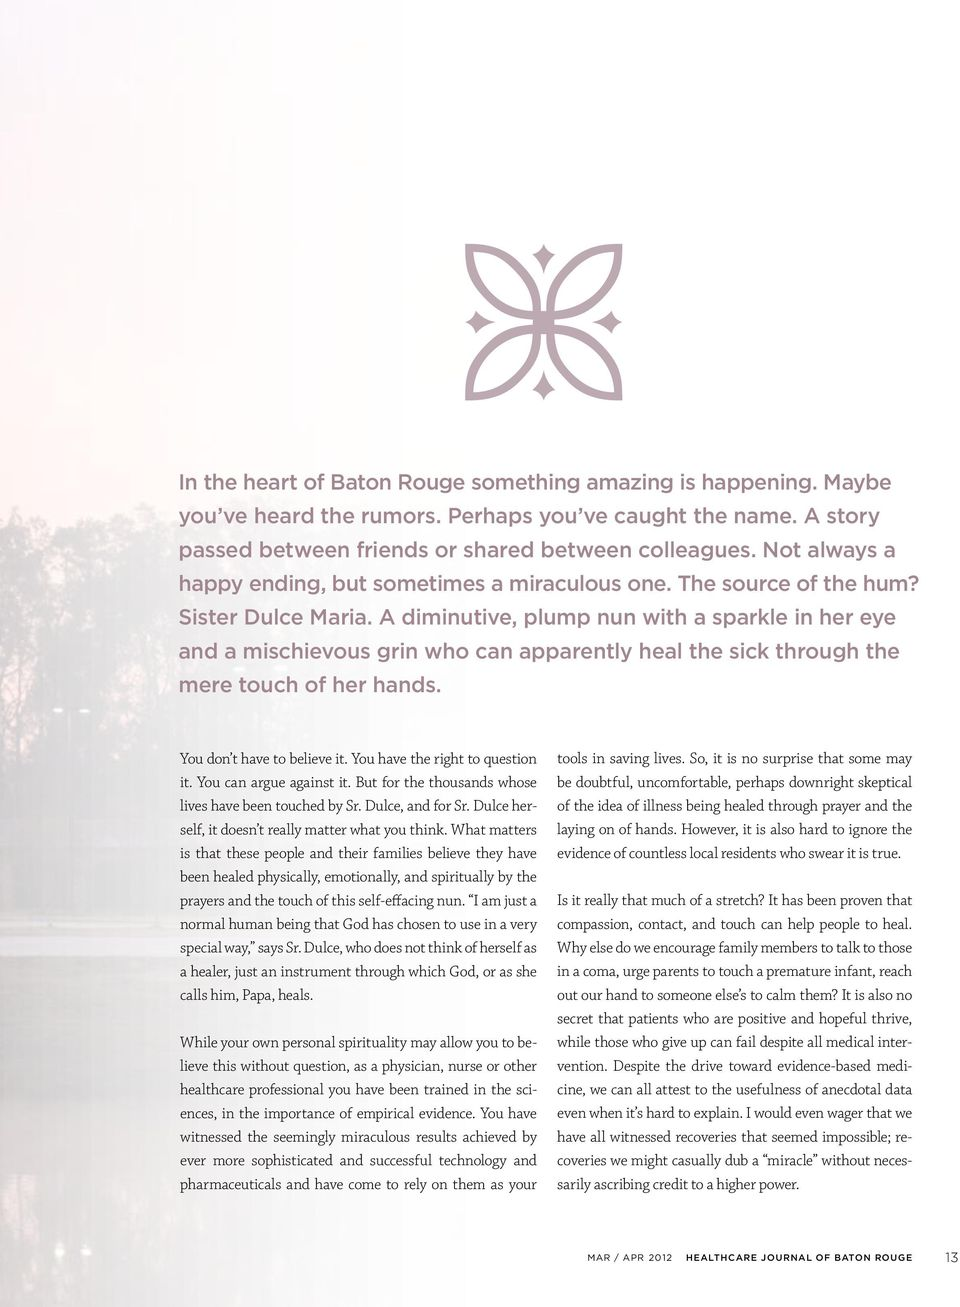 A diminutive, plump nun with a sparkle in her eye and a mischievous grin who can apparently heal the sick through the mere touch of her hands. You don t have to believe it.